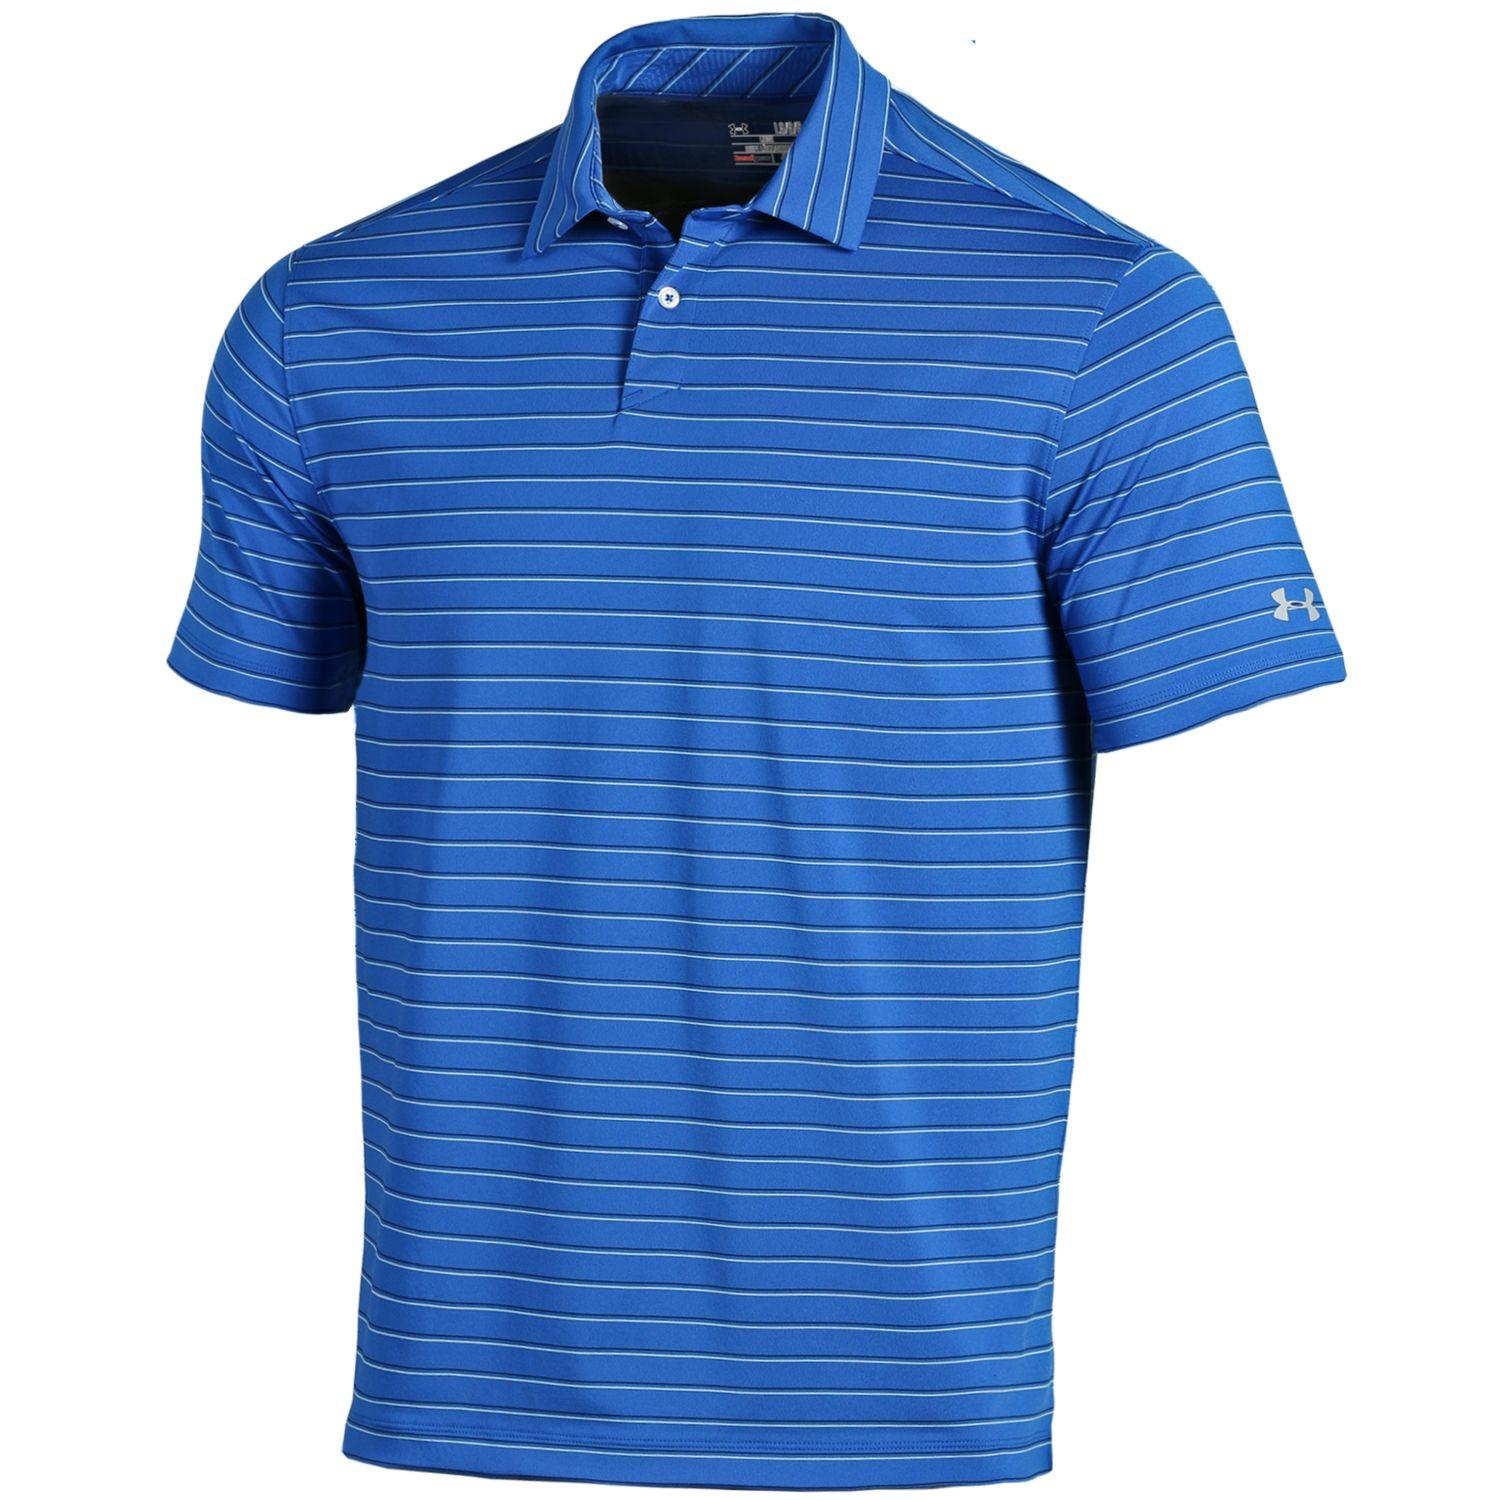 NEW Under Armour Putting Stripe Mens Golf Polo Size XX-Large 2XL - Choose Color